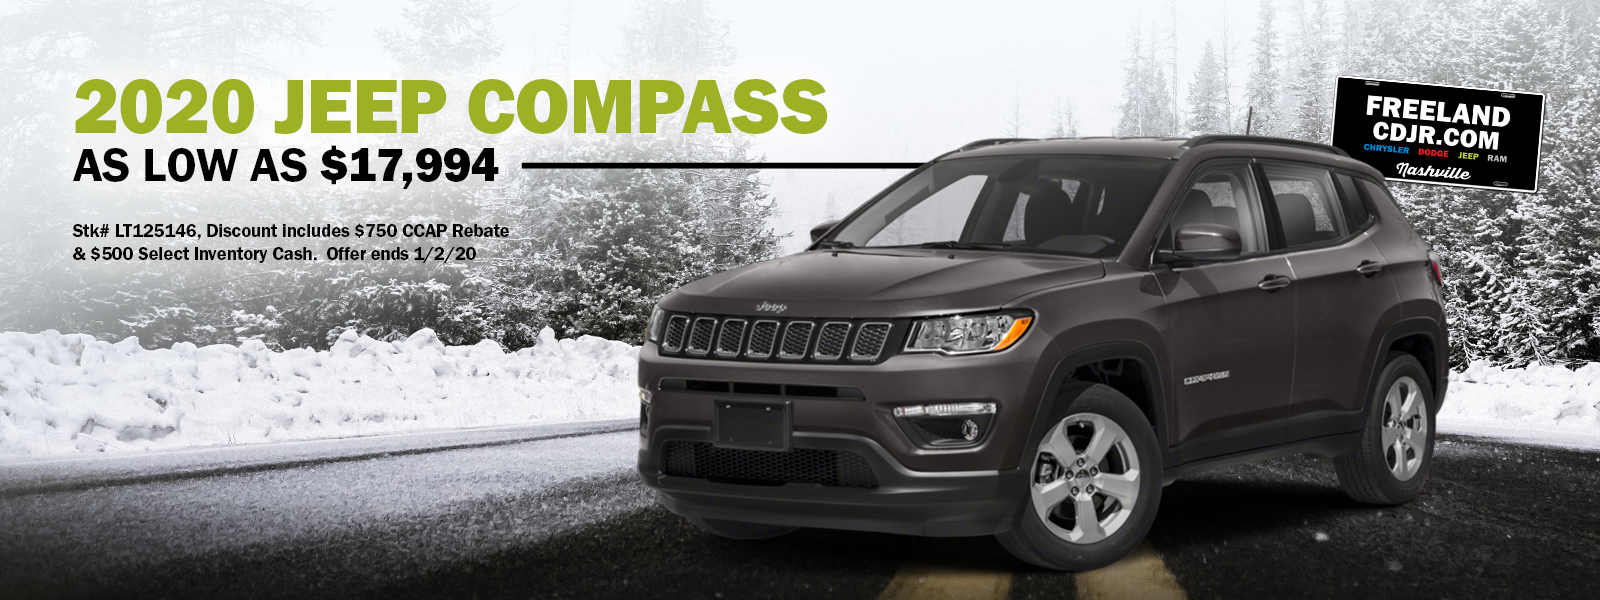 Low Priced 2020 Jeep Compass